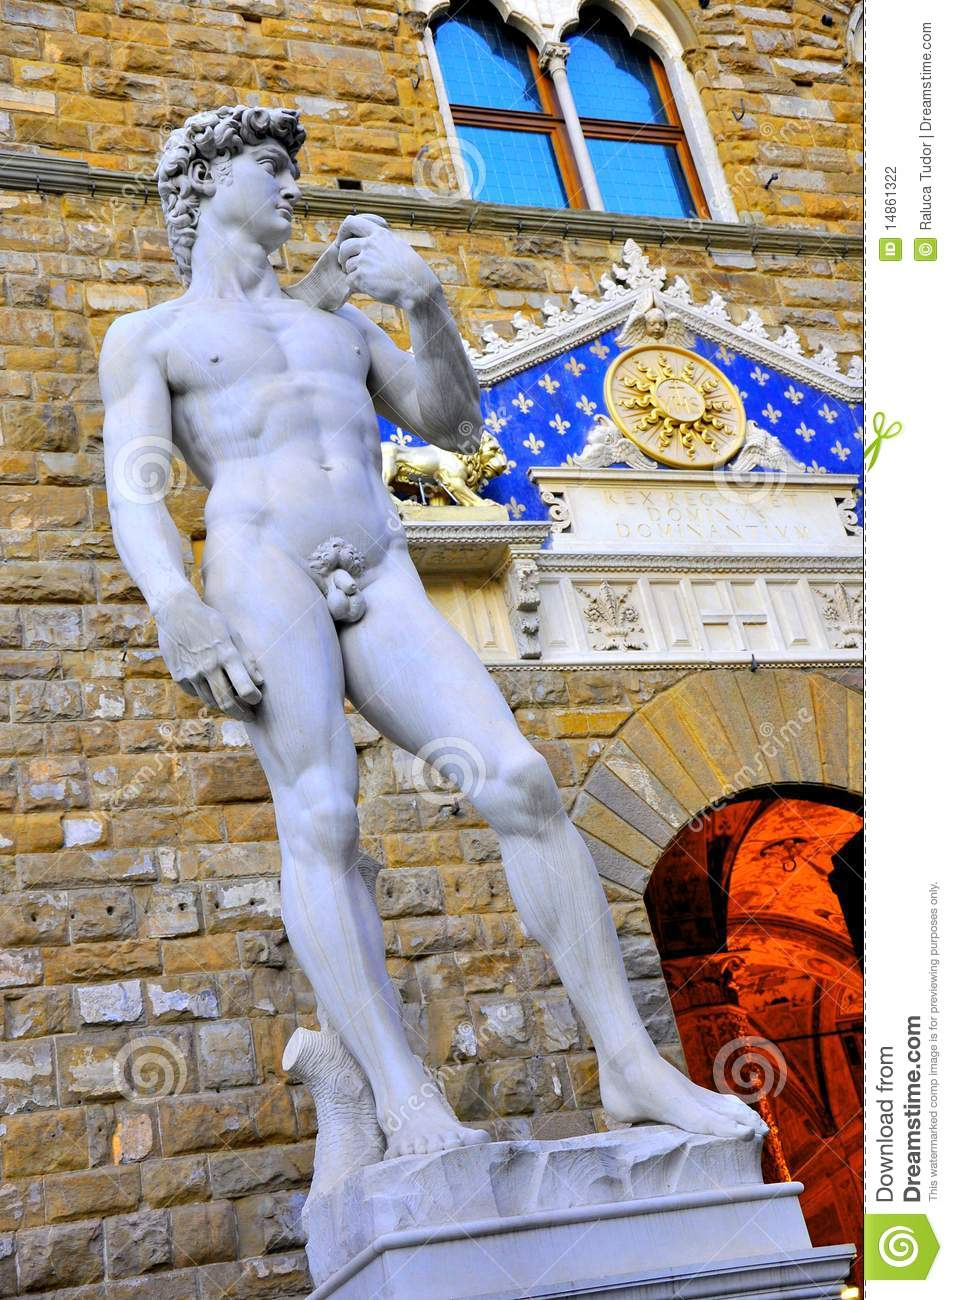 Culture in Florence, Italy